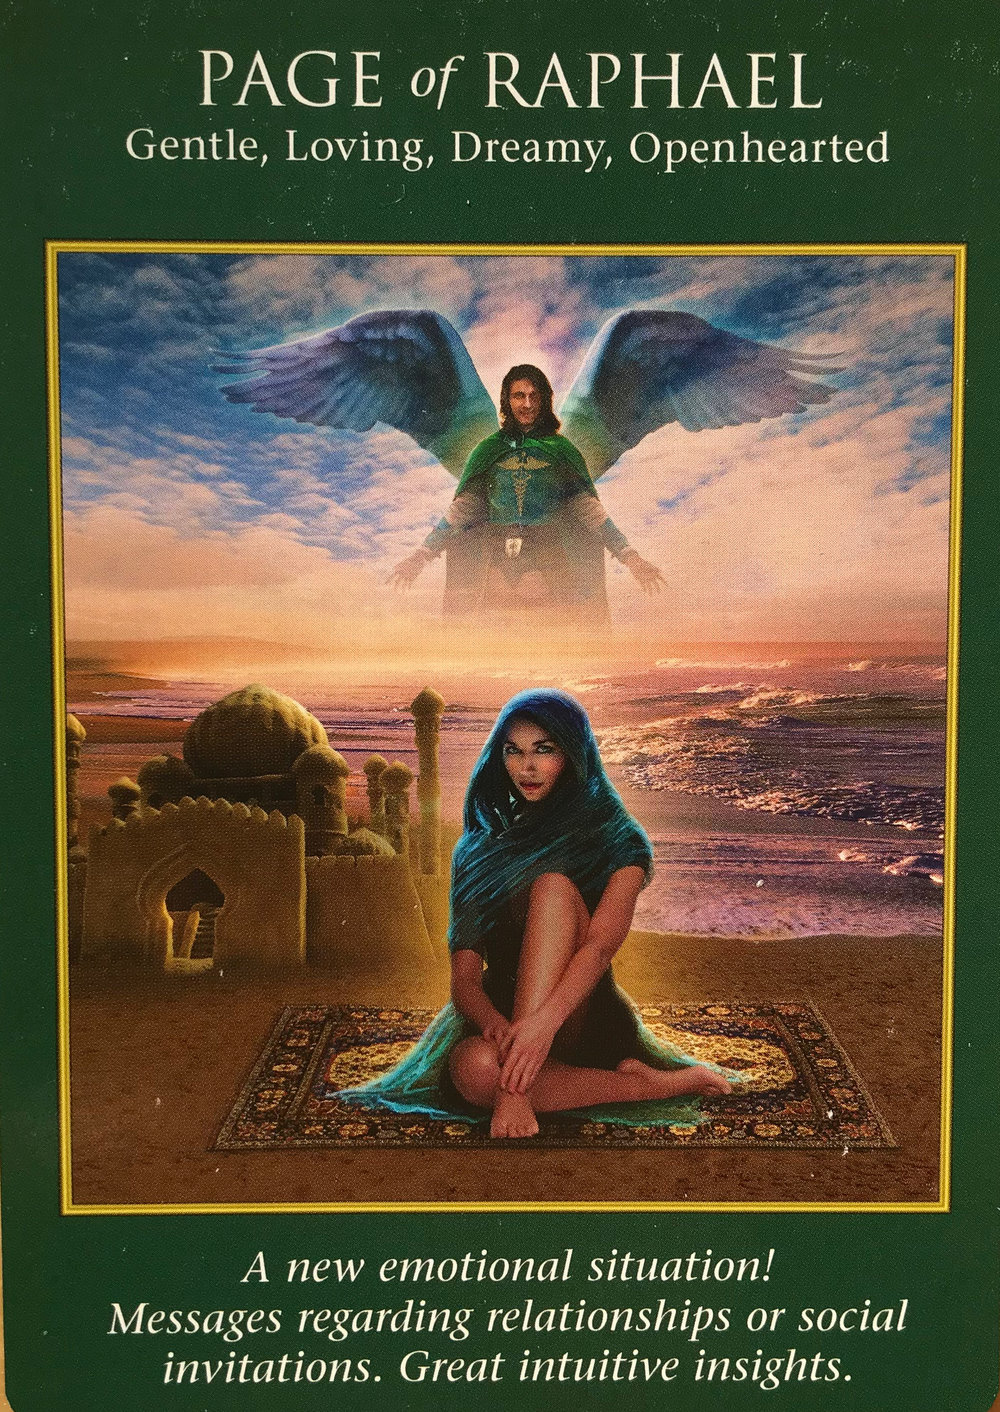 Pisces-Page of Raphael - You tend to be fairly intuitive, Pisces. Your emotions tell you a lot about what you're doing and where you're going. Make sure you're listening to your higher self—Trust! May brings in an energy where you might find yourself loving your work and relationships a little extra. As more loving energy enters your personal energy, make sure you are communicating yourself effectively so that others don't get a false impression of you. This is a good time to think about your relationships, romantic and platonic, and what you want from them and whether you are getting what you need. Working on this now could result in much better, or worse, circumstances by next month—it's up to you to trust what is right!